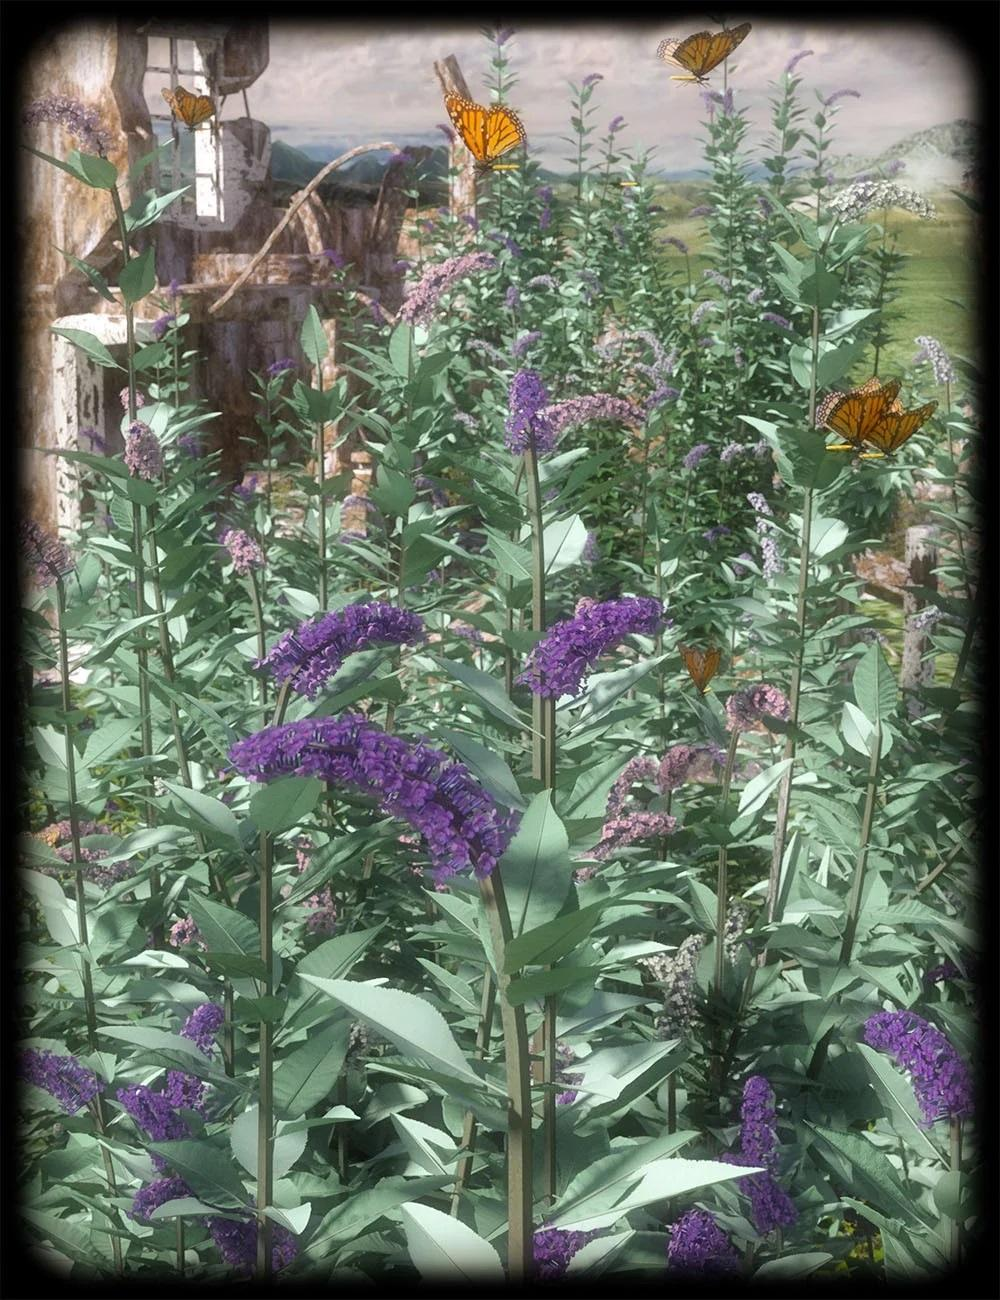 Buddleia - Butterfly Bushes